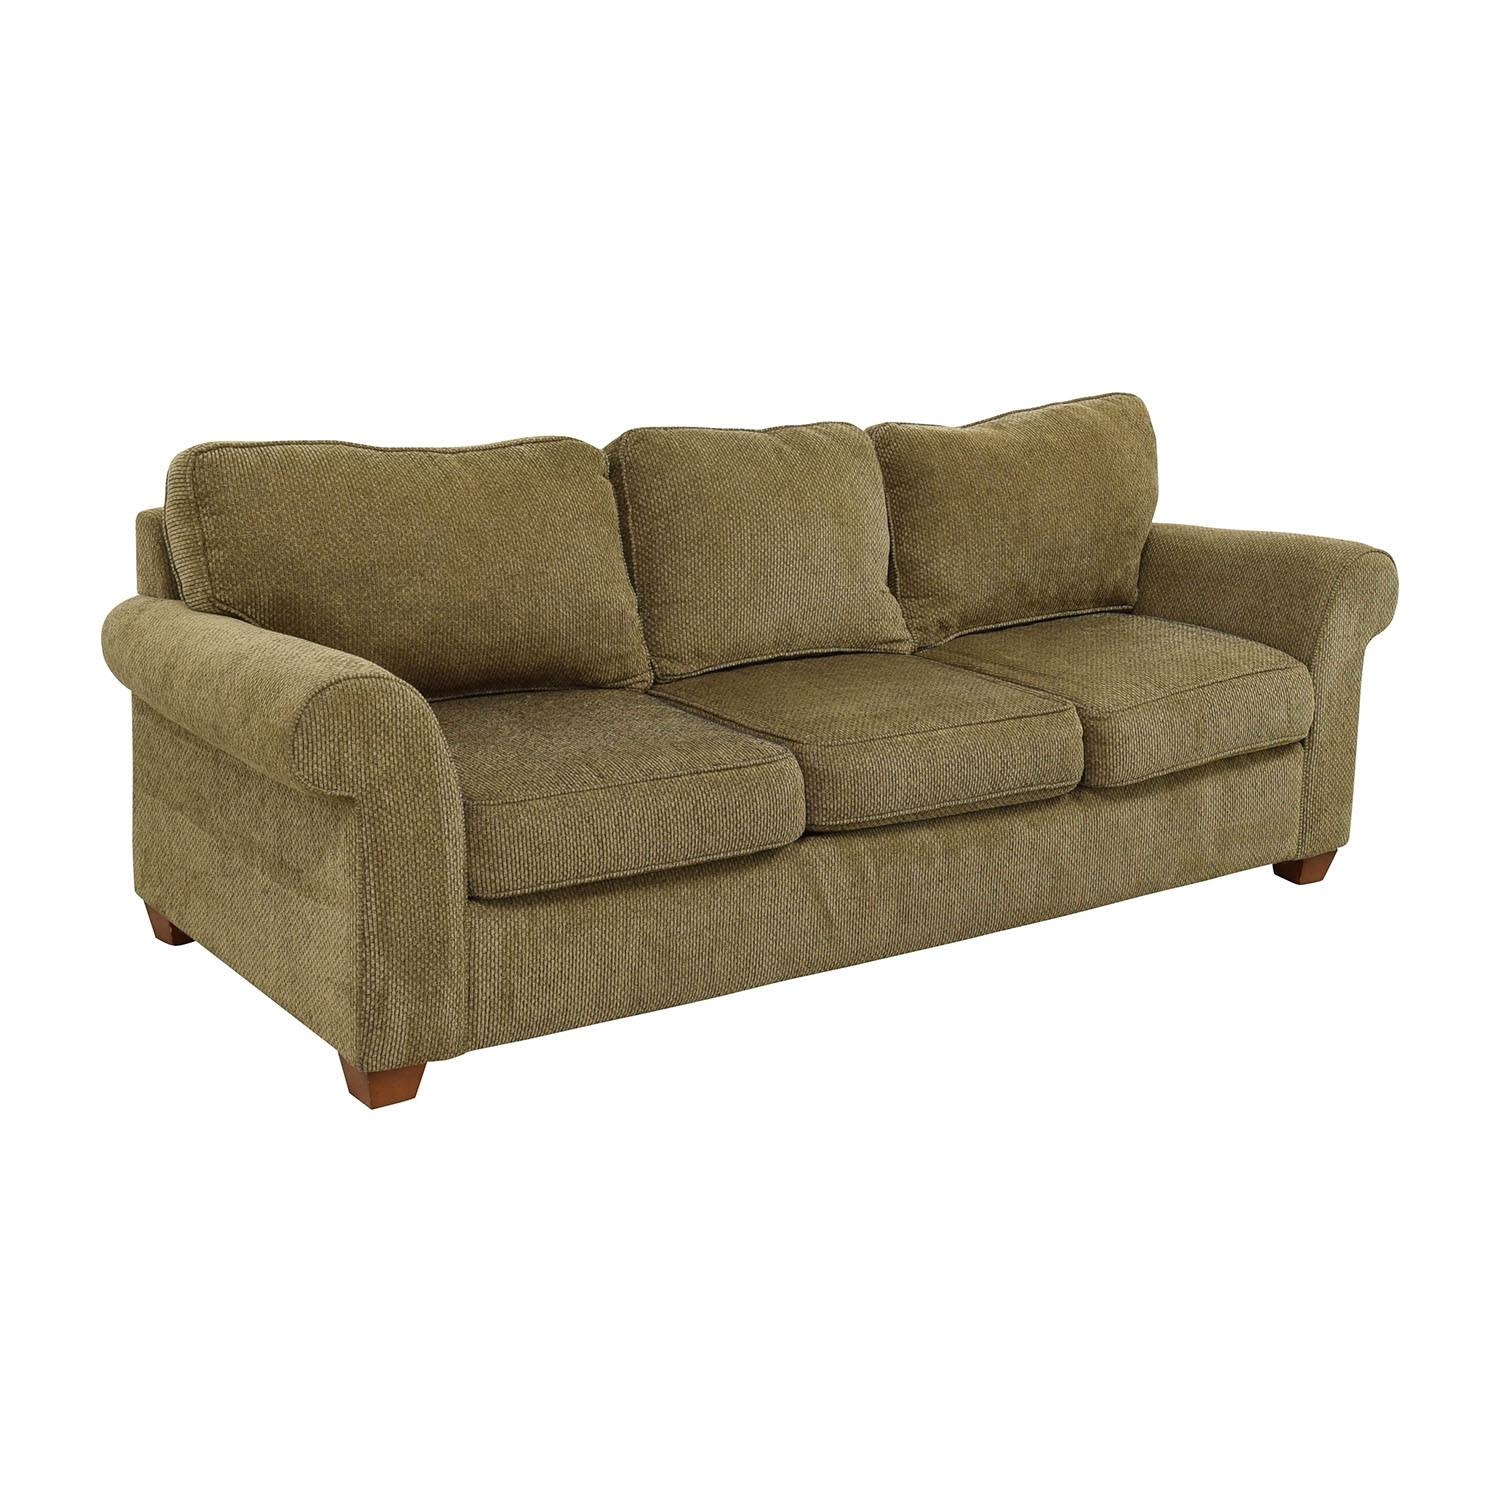 81% Off - Bloomingdale's Bloomingdale's Beige Tweed Fabric Sofa inside Bloomingdales Sofas (Image 5 of 15)